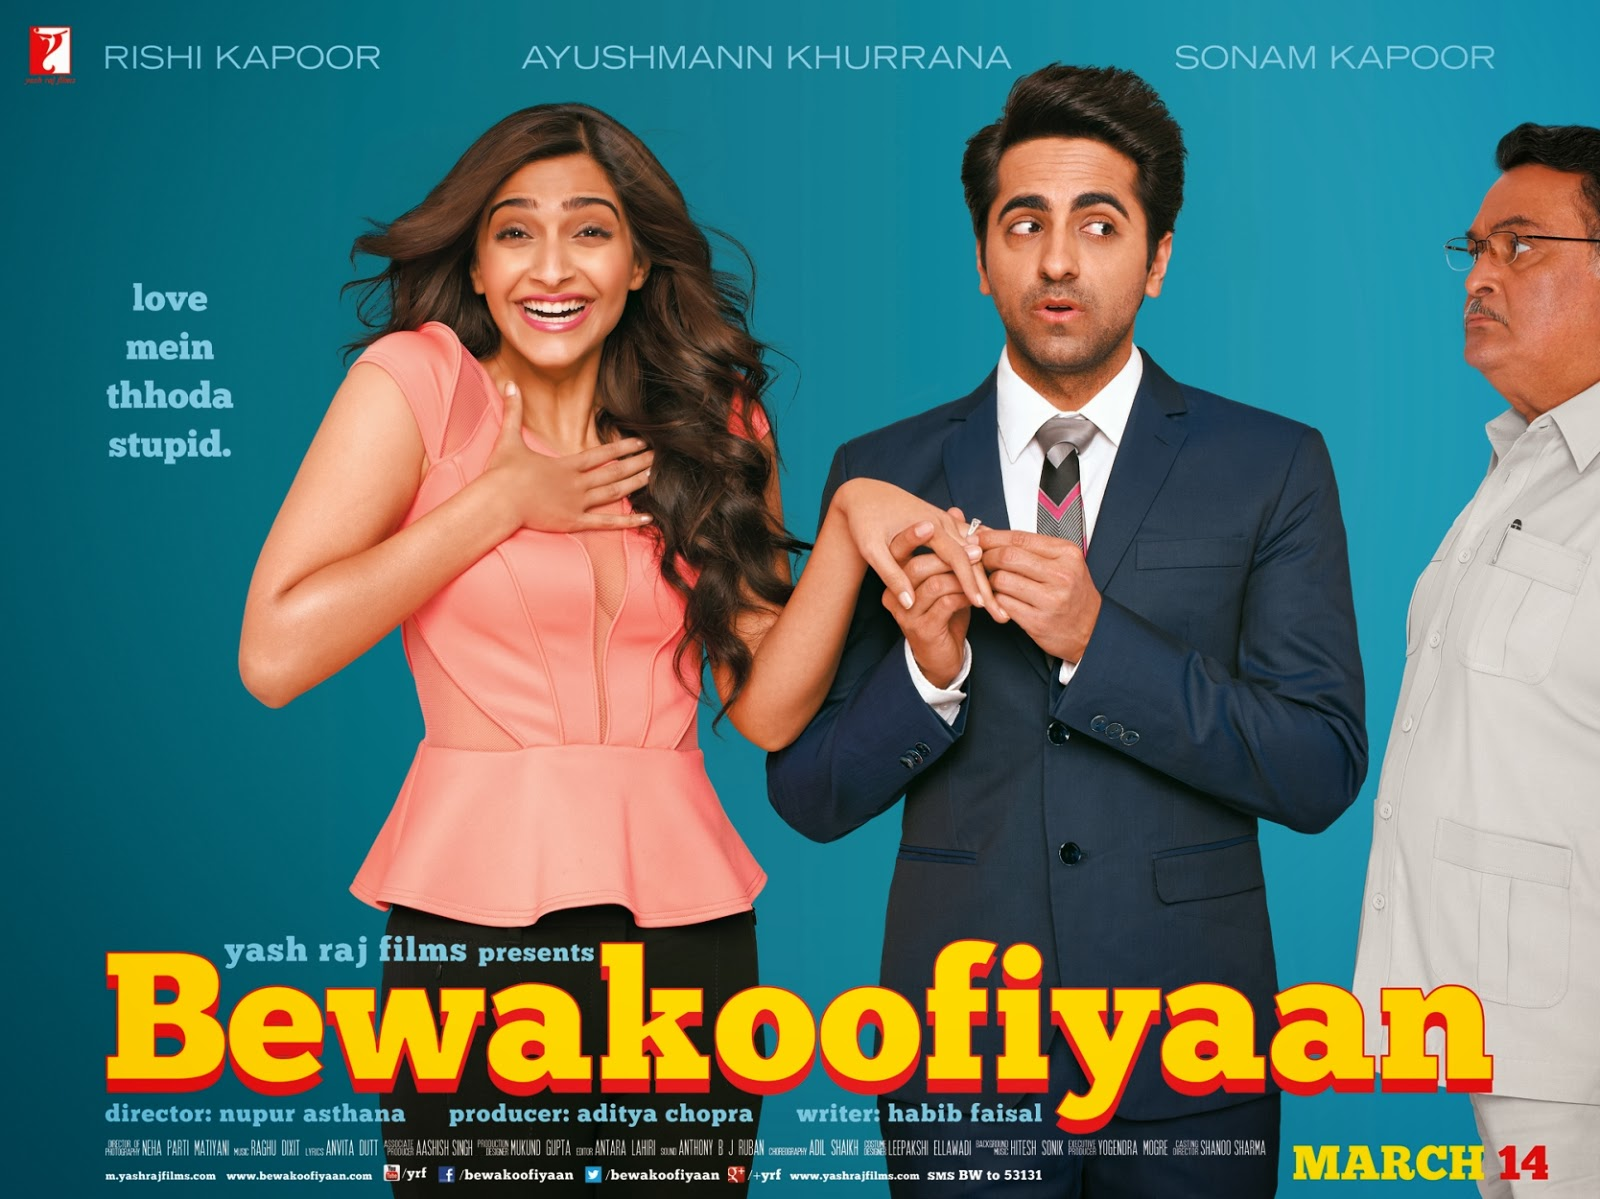 BEWAKOOFIYAAN MOVIE 2014 SONGS LYRICS & VIDEOS